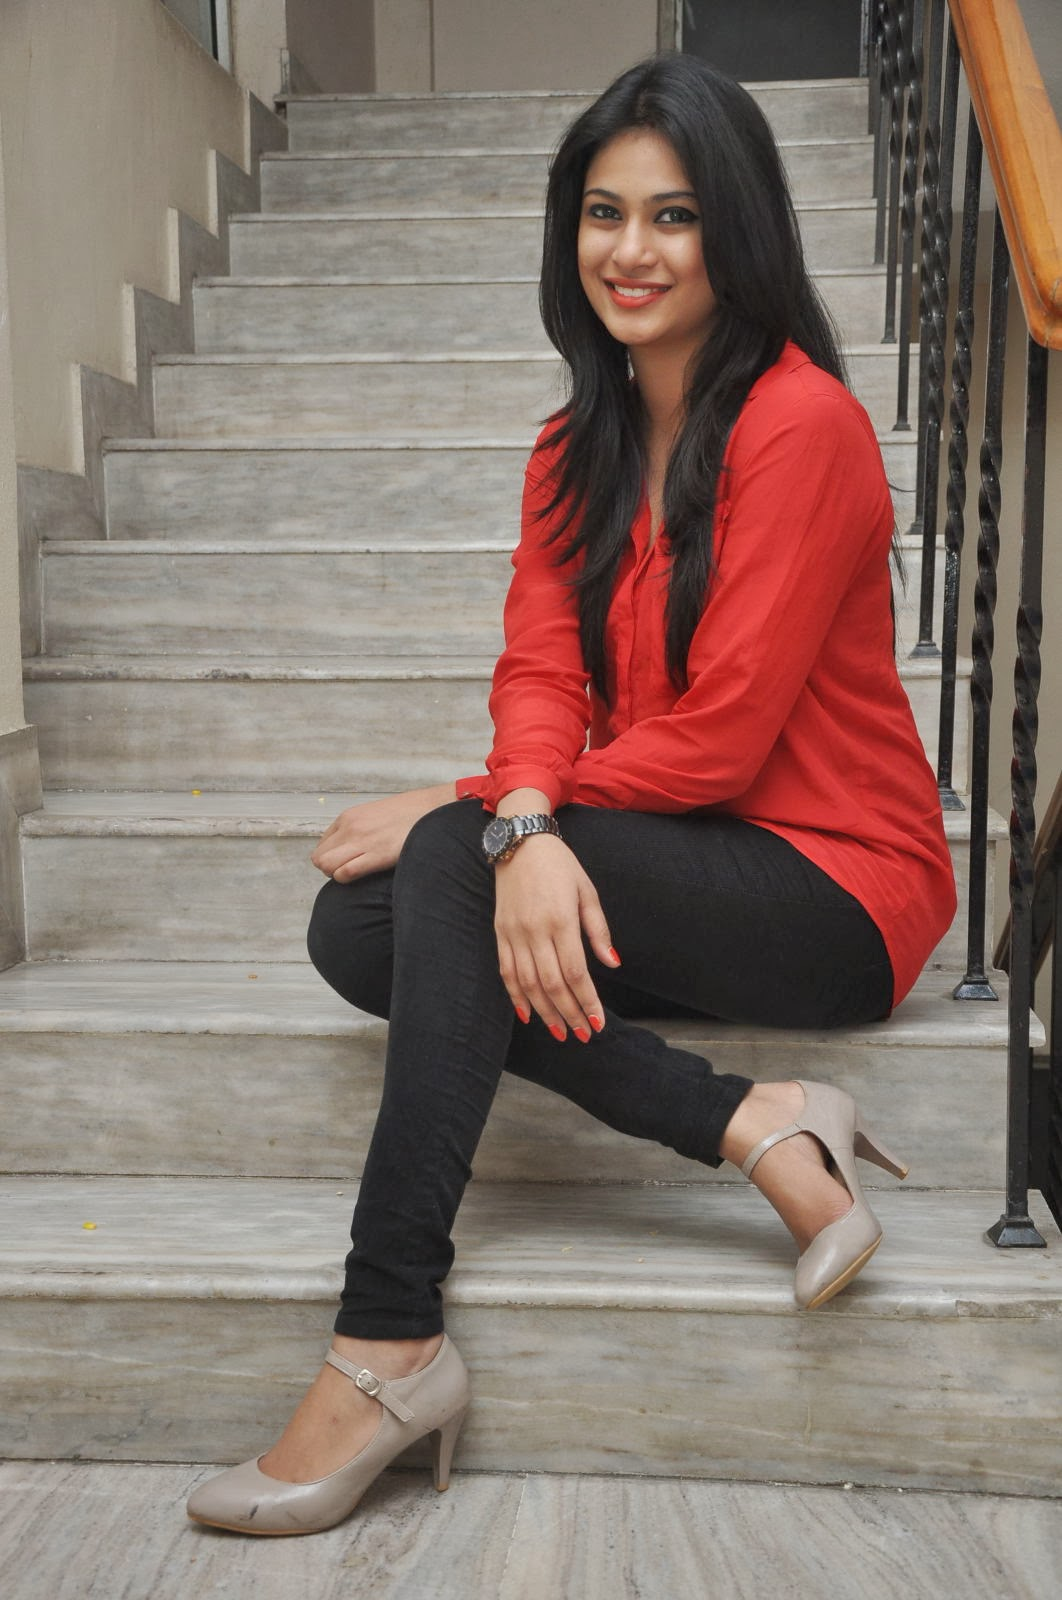 hot sexy Zara shah photo gallery in red top and black jeans